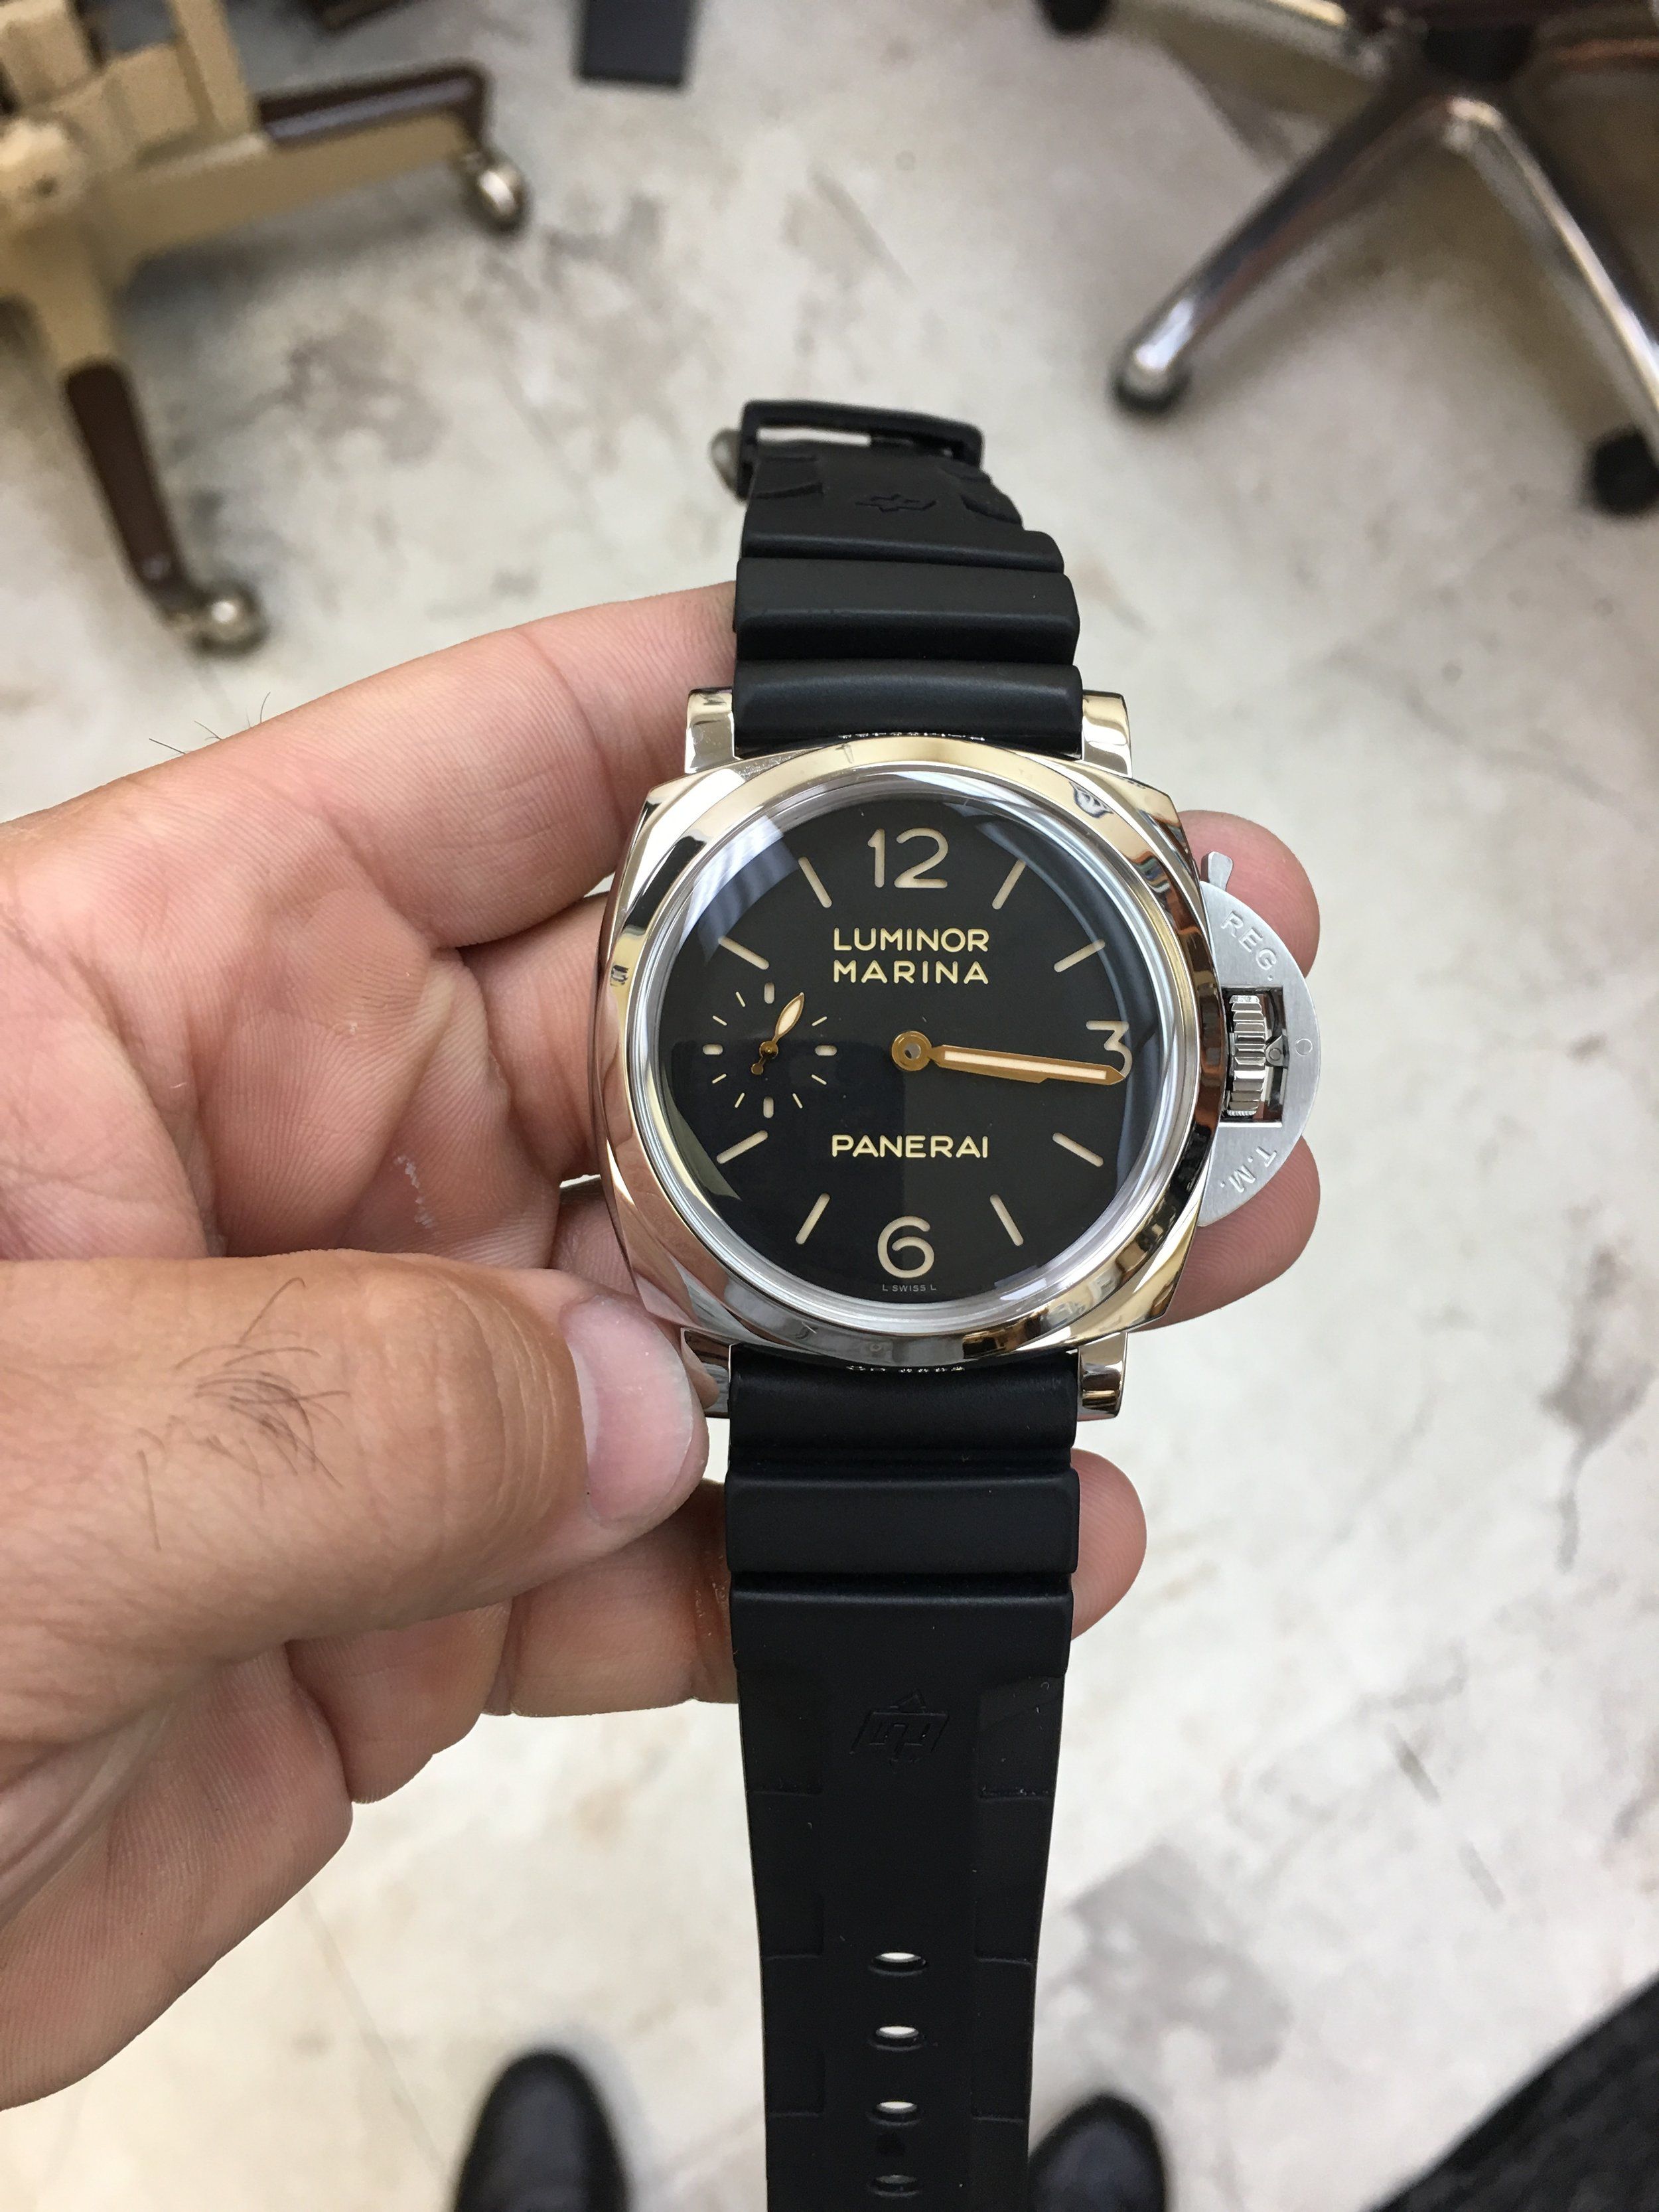 Watch Panerai Luminor Marina. Tampa Jewelry Store Watch Repair